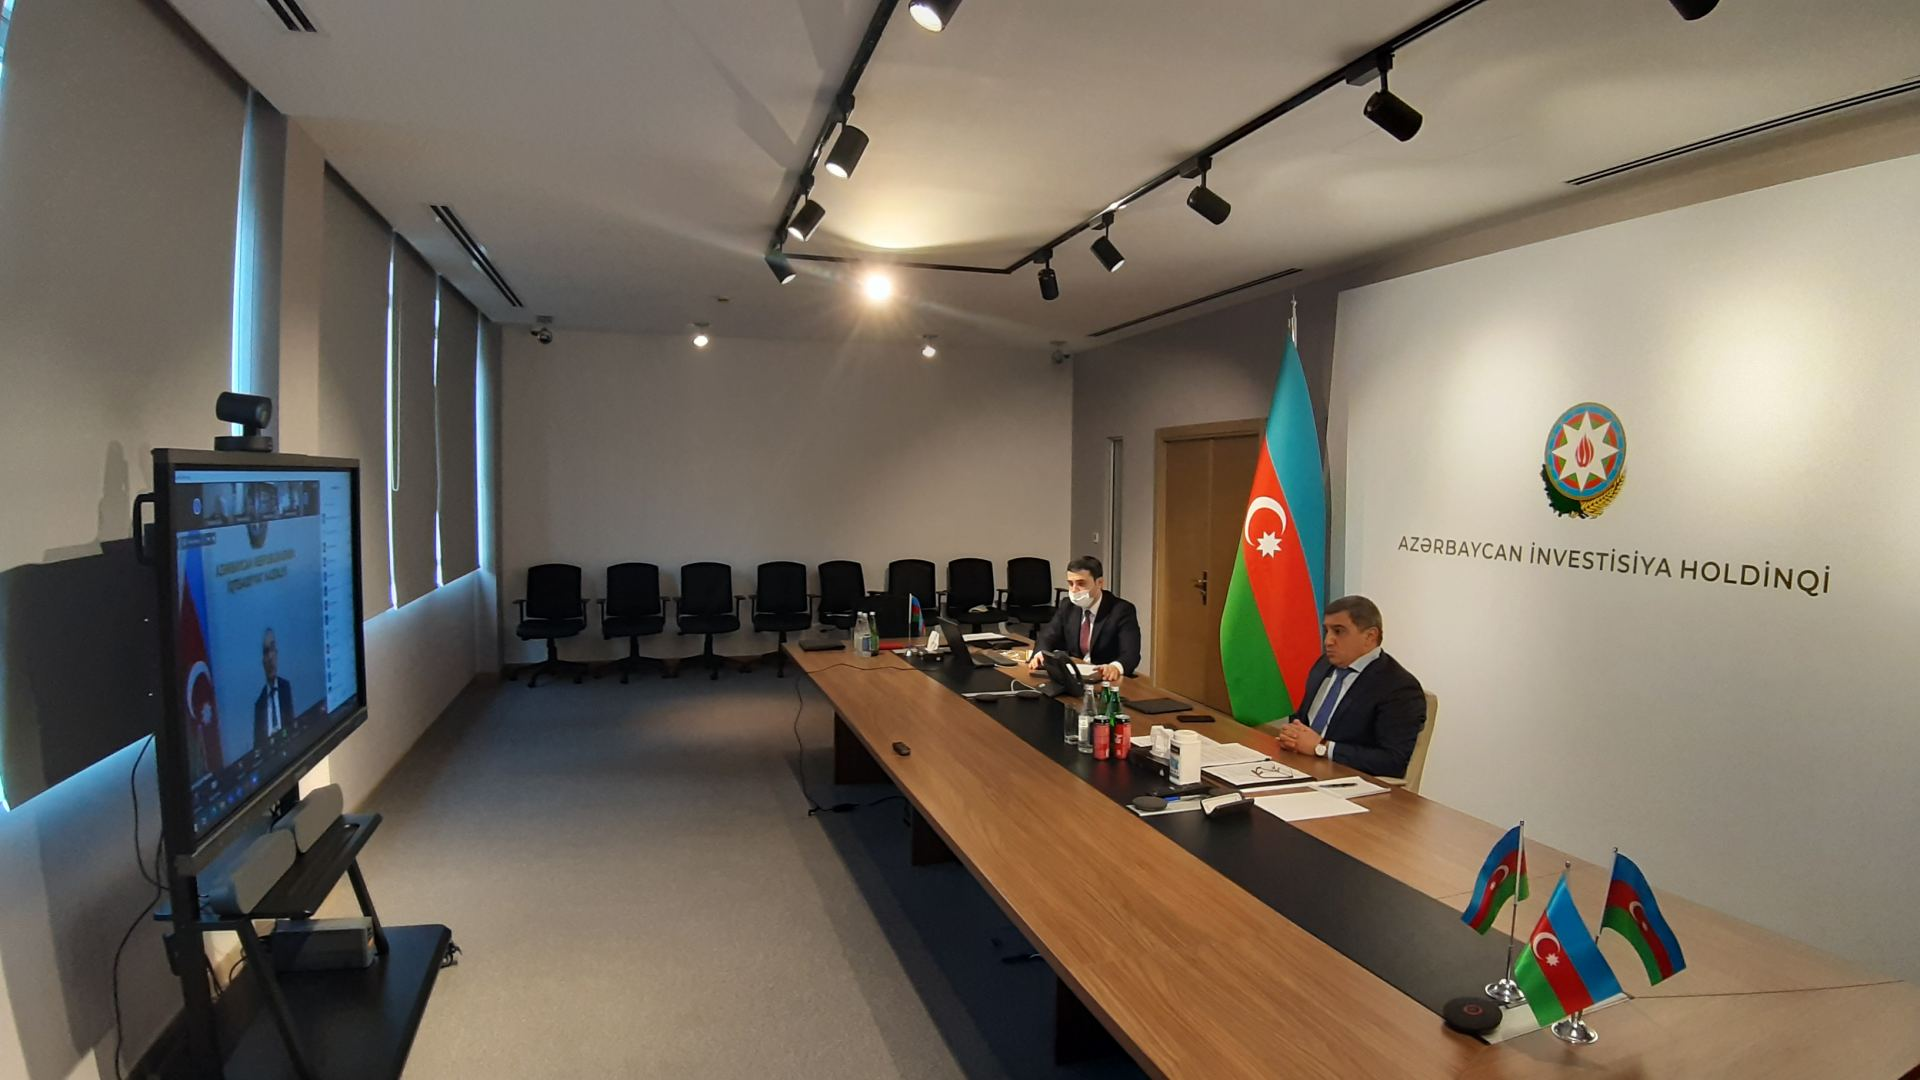 Supervisory Board of State Oil Company of Azerbaijan holds first meeting (PHOTO) - Gallery Image